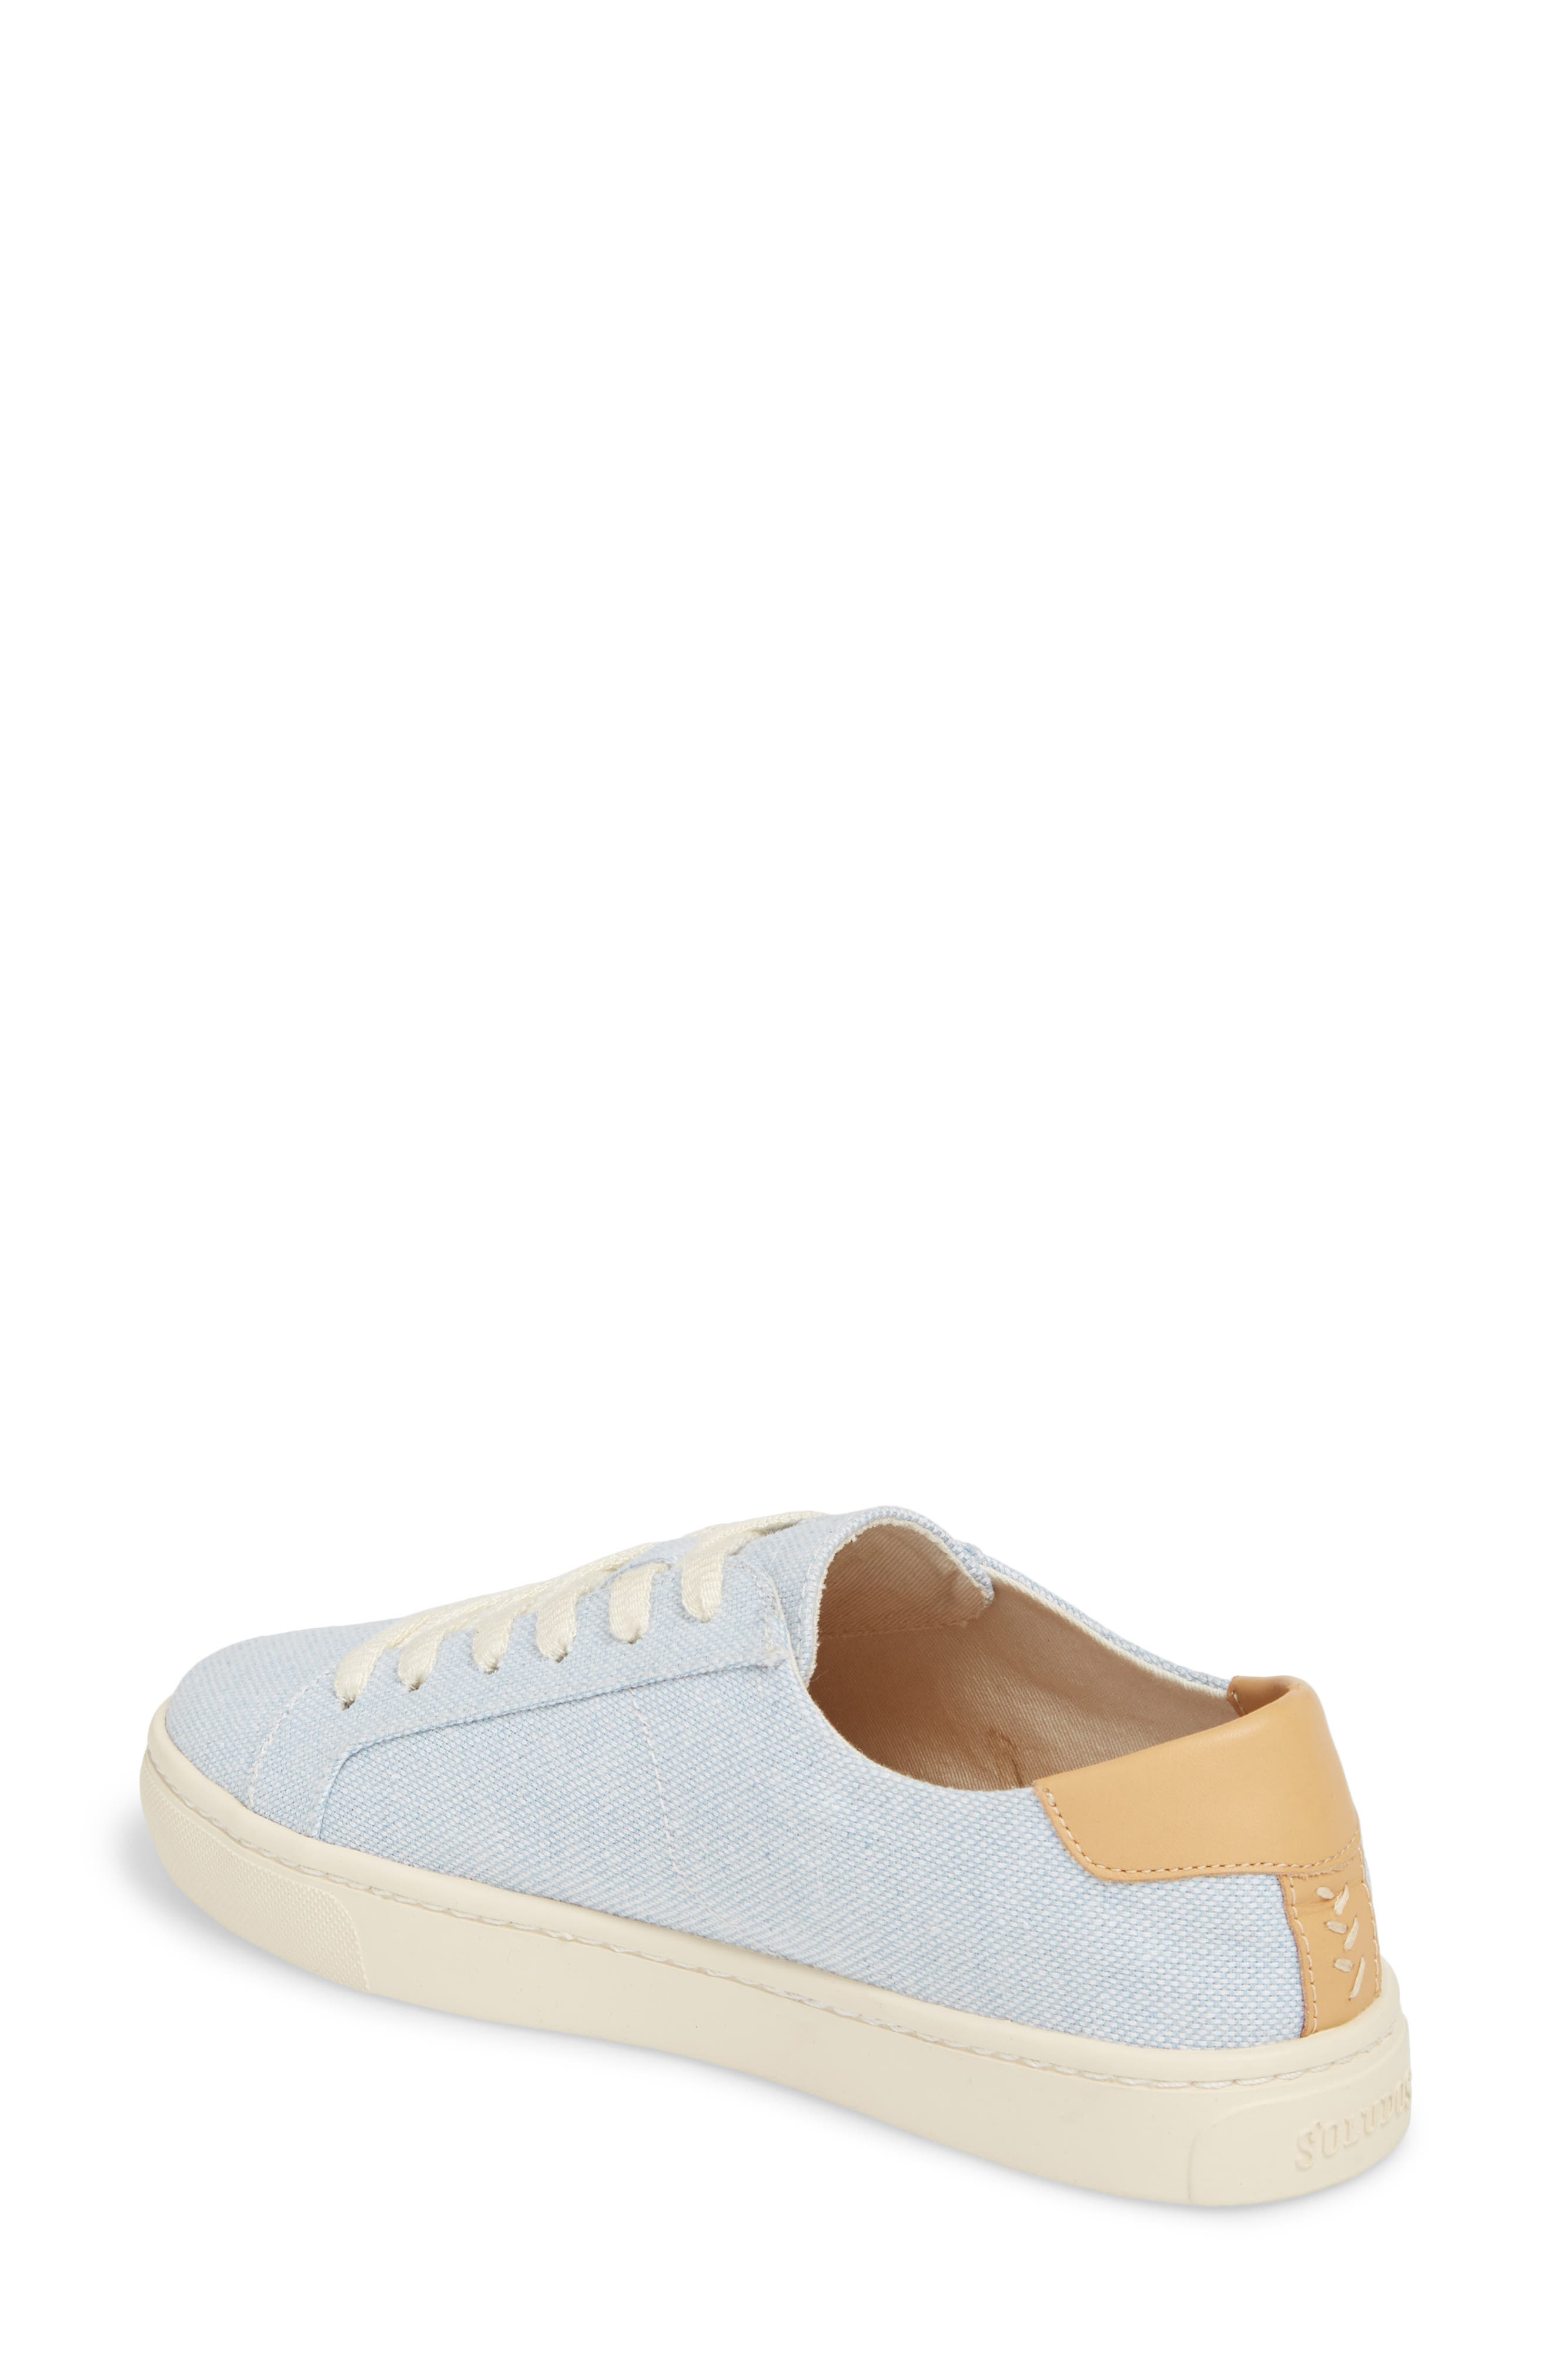 Ibiza Canvas Lace-Up Sneaker,                             Alternate thumbnail 2, color,                             SKY BLUE